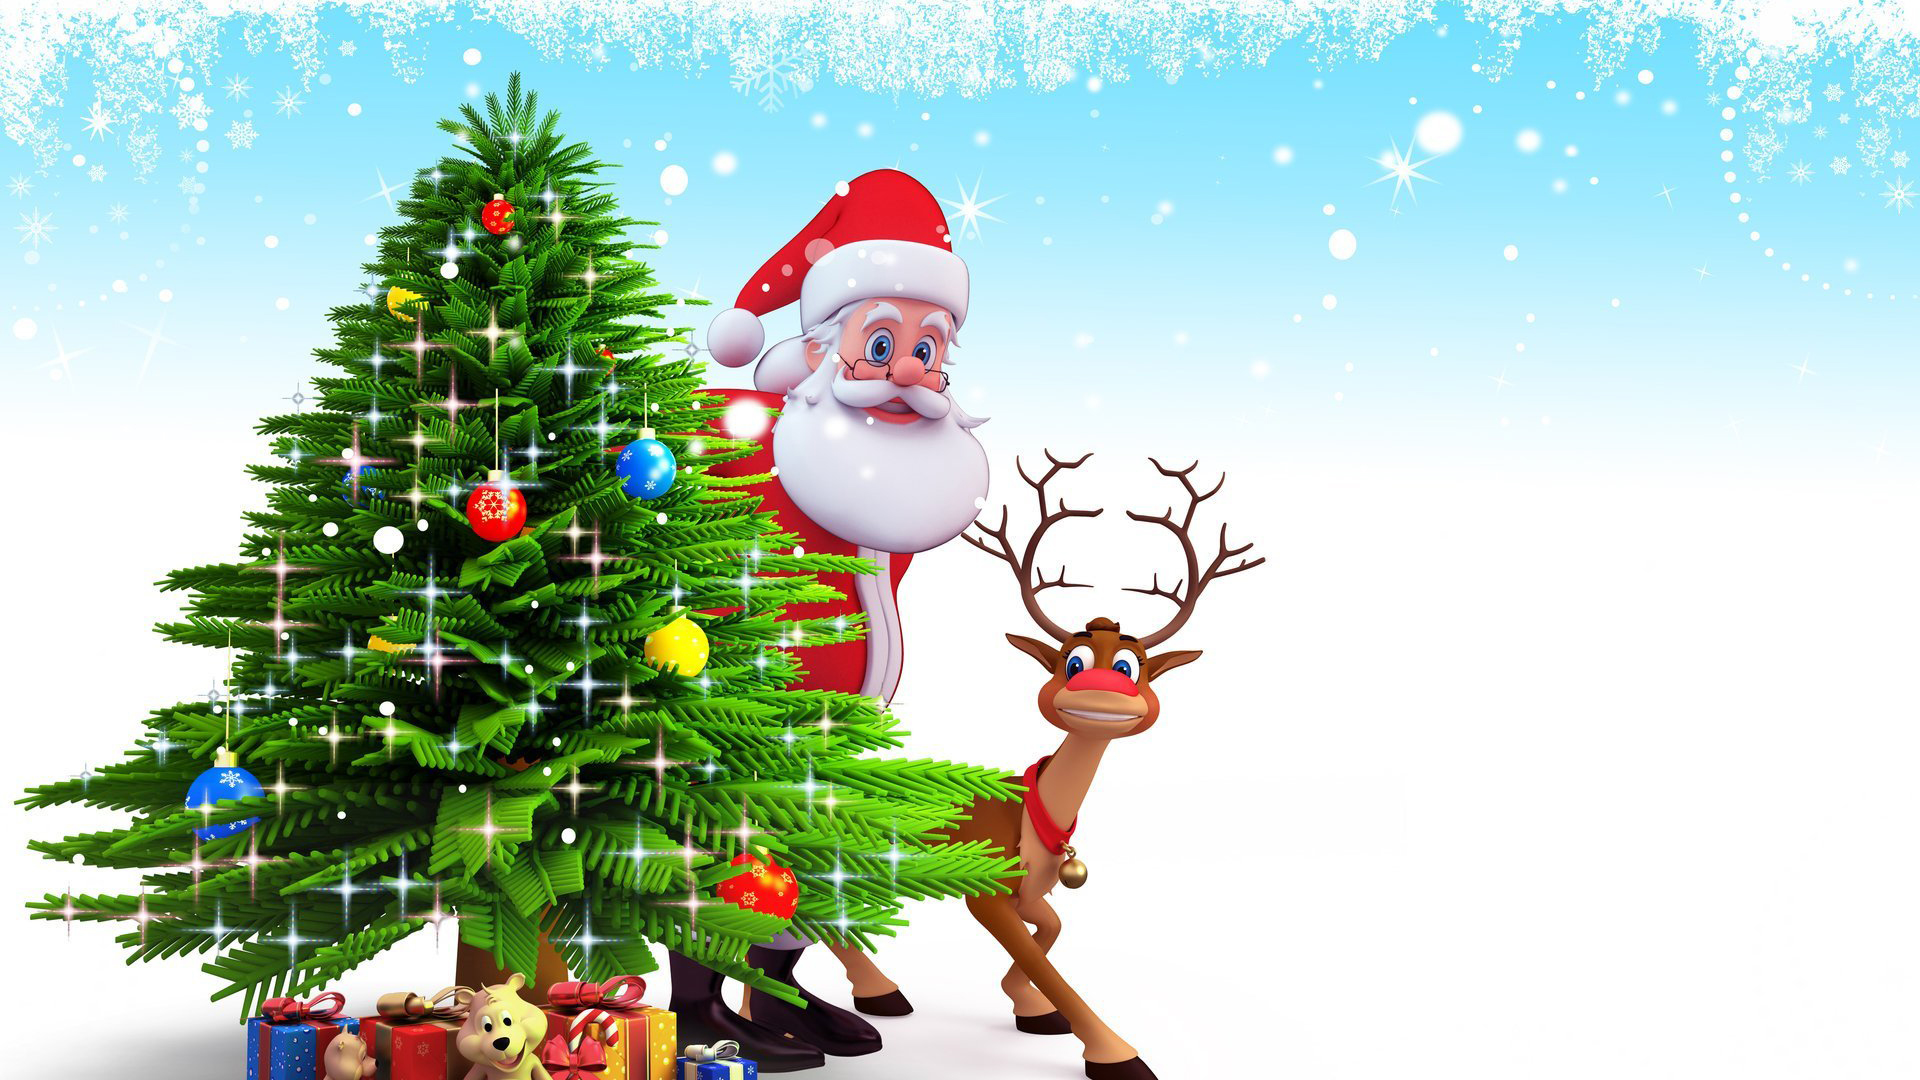 309 3098091 christmas santa claus wallpaper album on imgur christmas